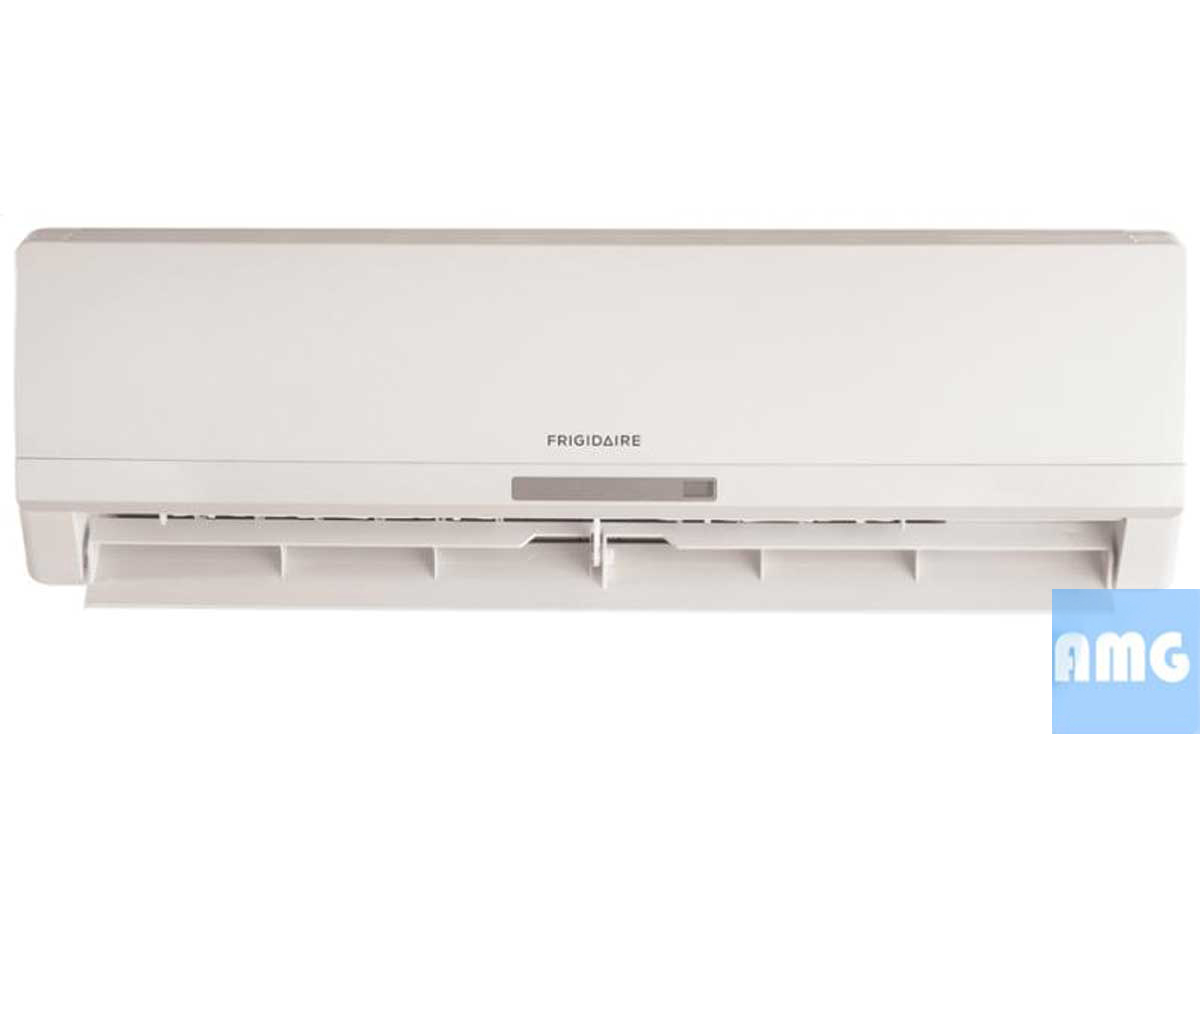 Frigidaire Heat Pump Wiring Diagram Trusted 9k Frs09pys1 Ductless Units Amg Bosch